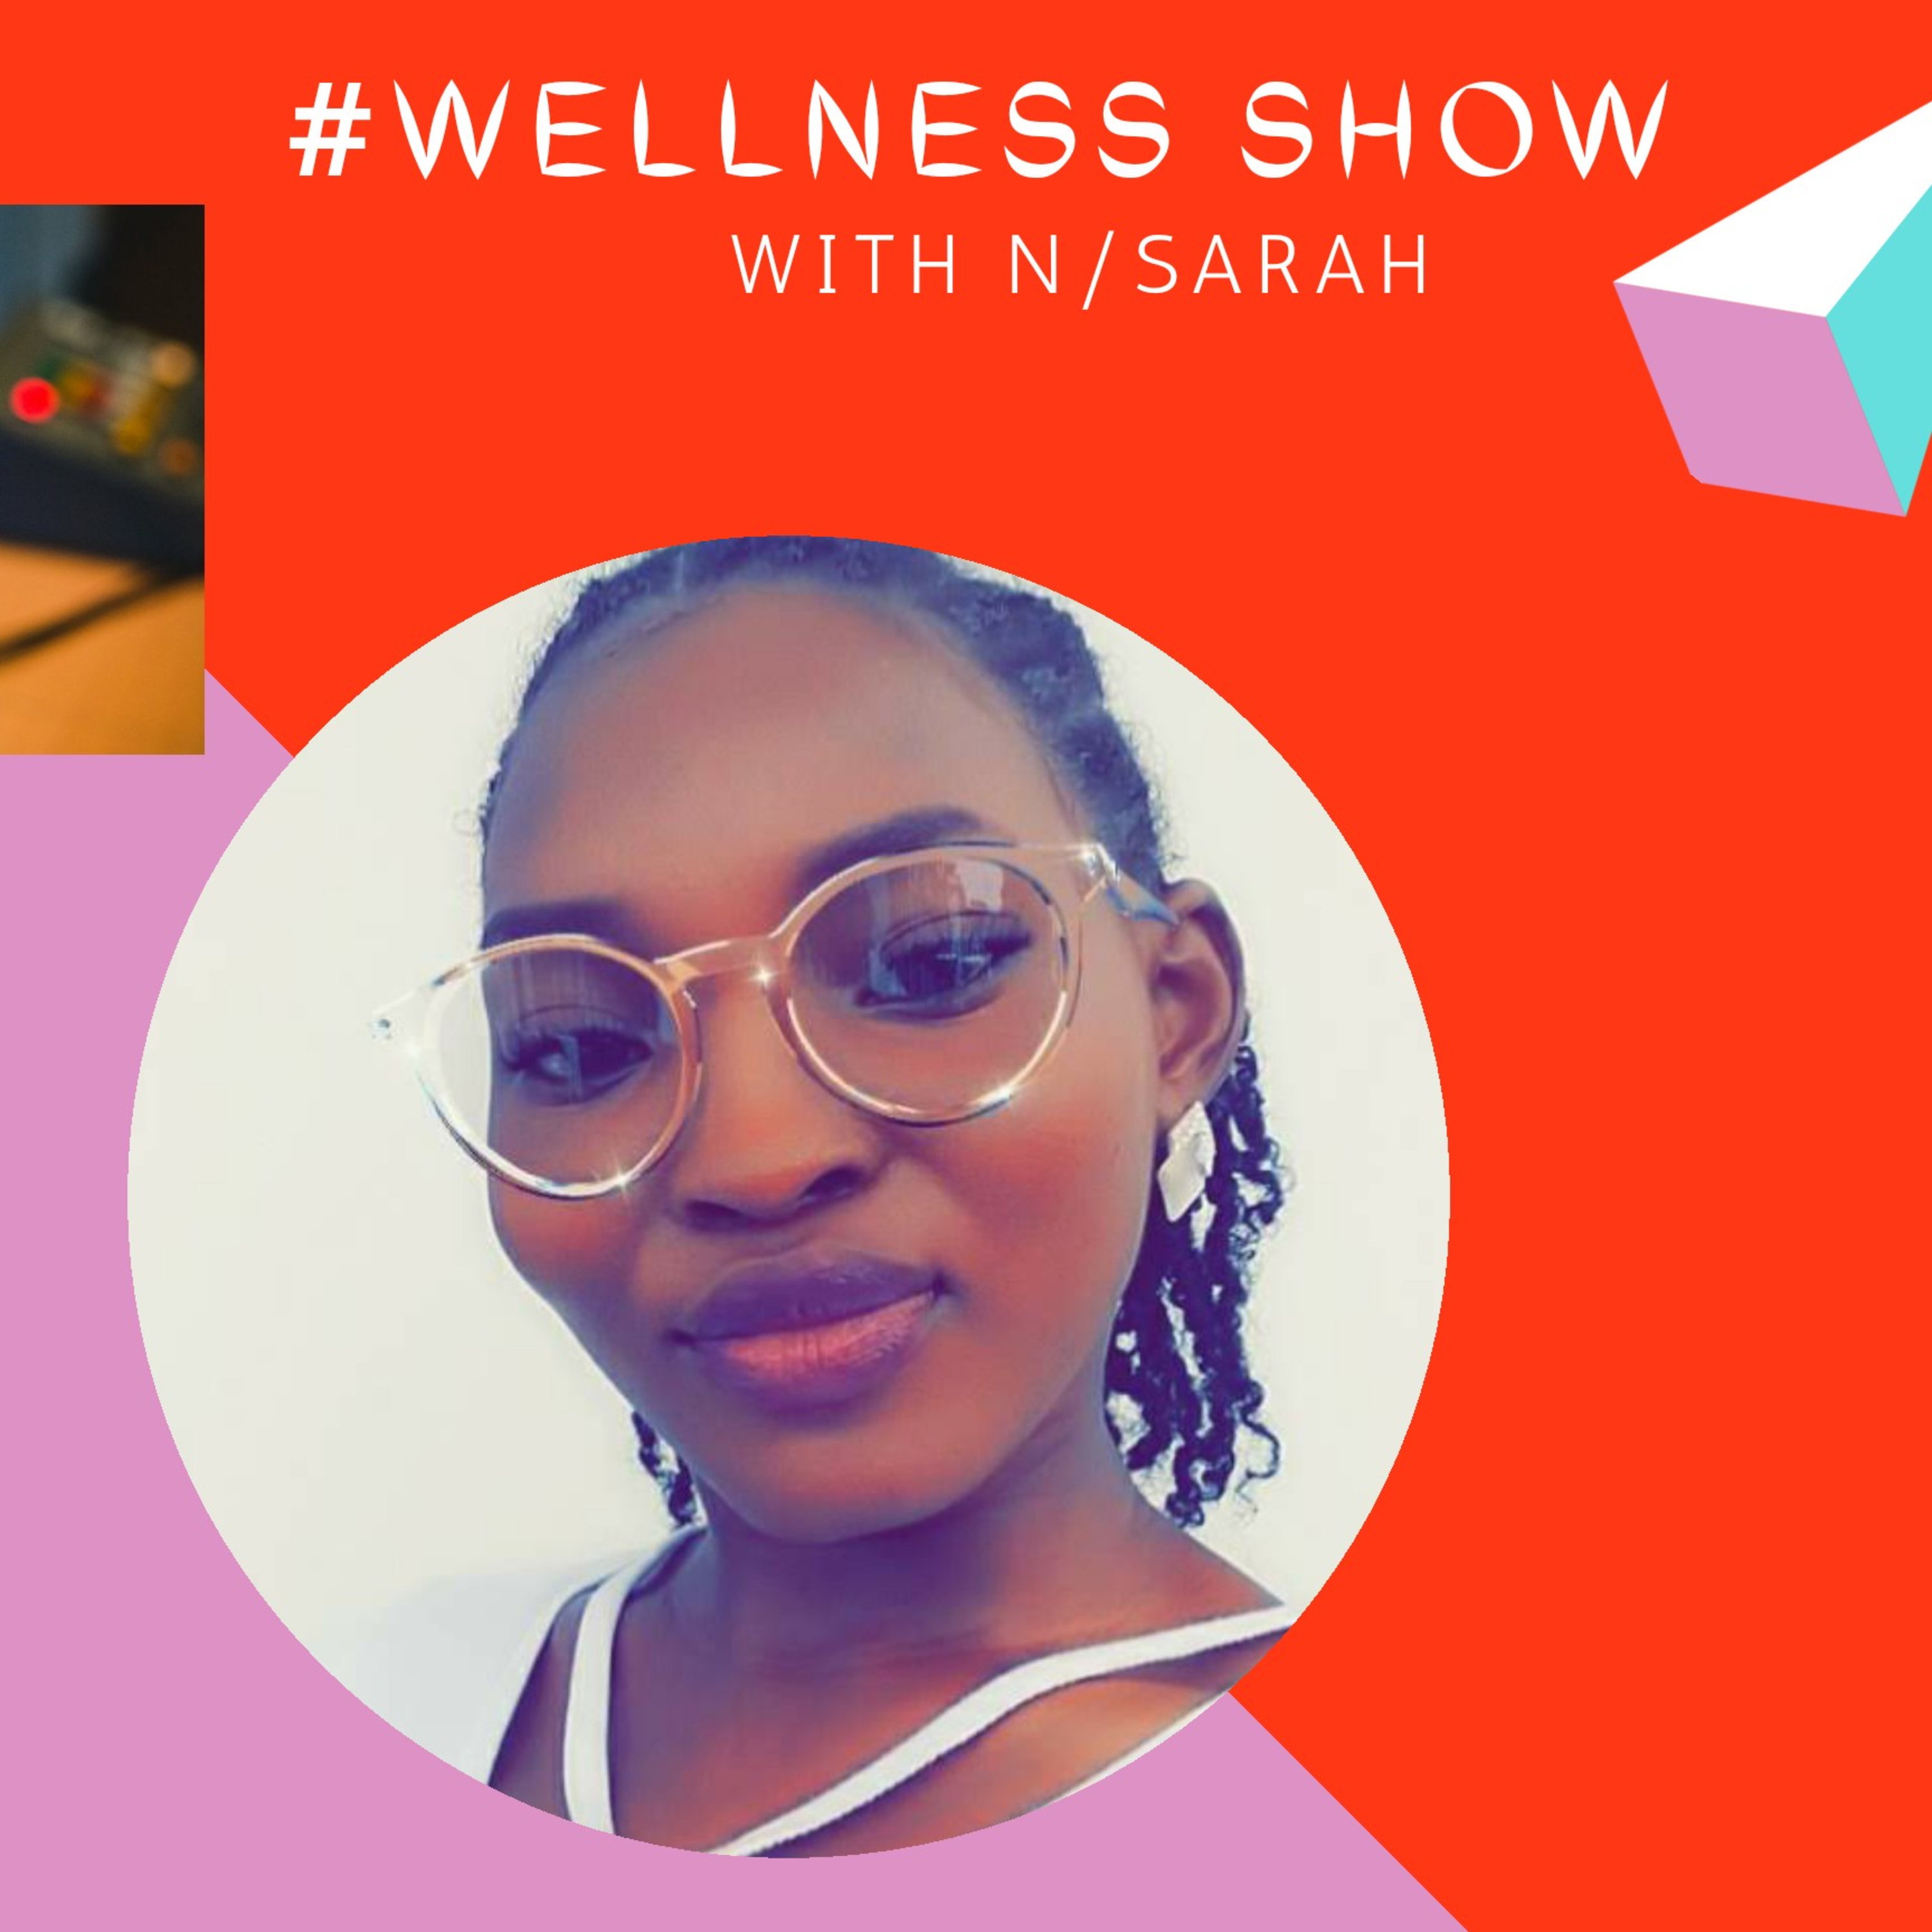 The Wellness Show on Jamit